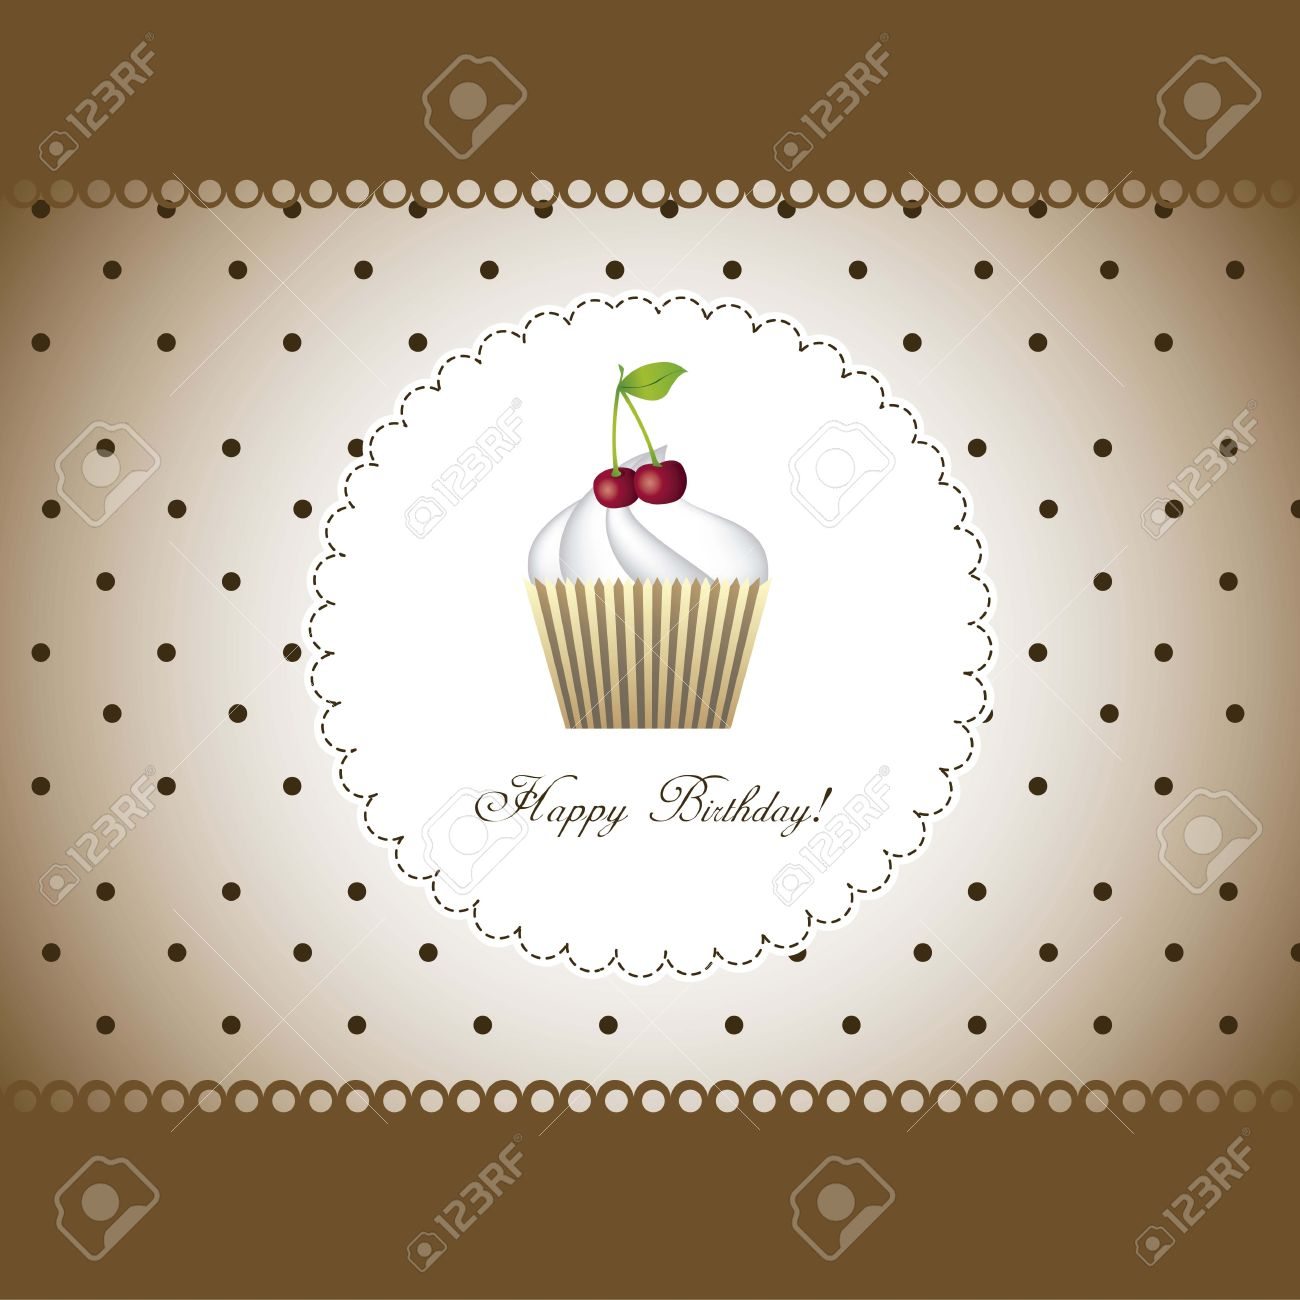 happy birthday card with cupcake over brown background - 15068225